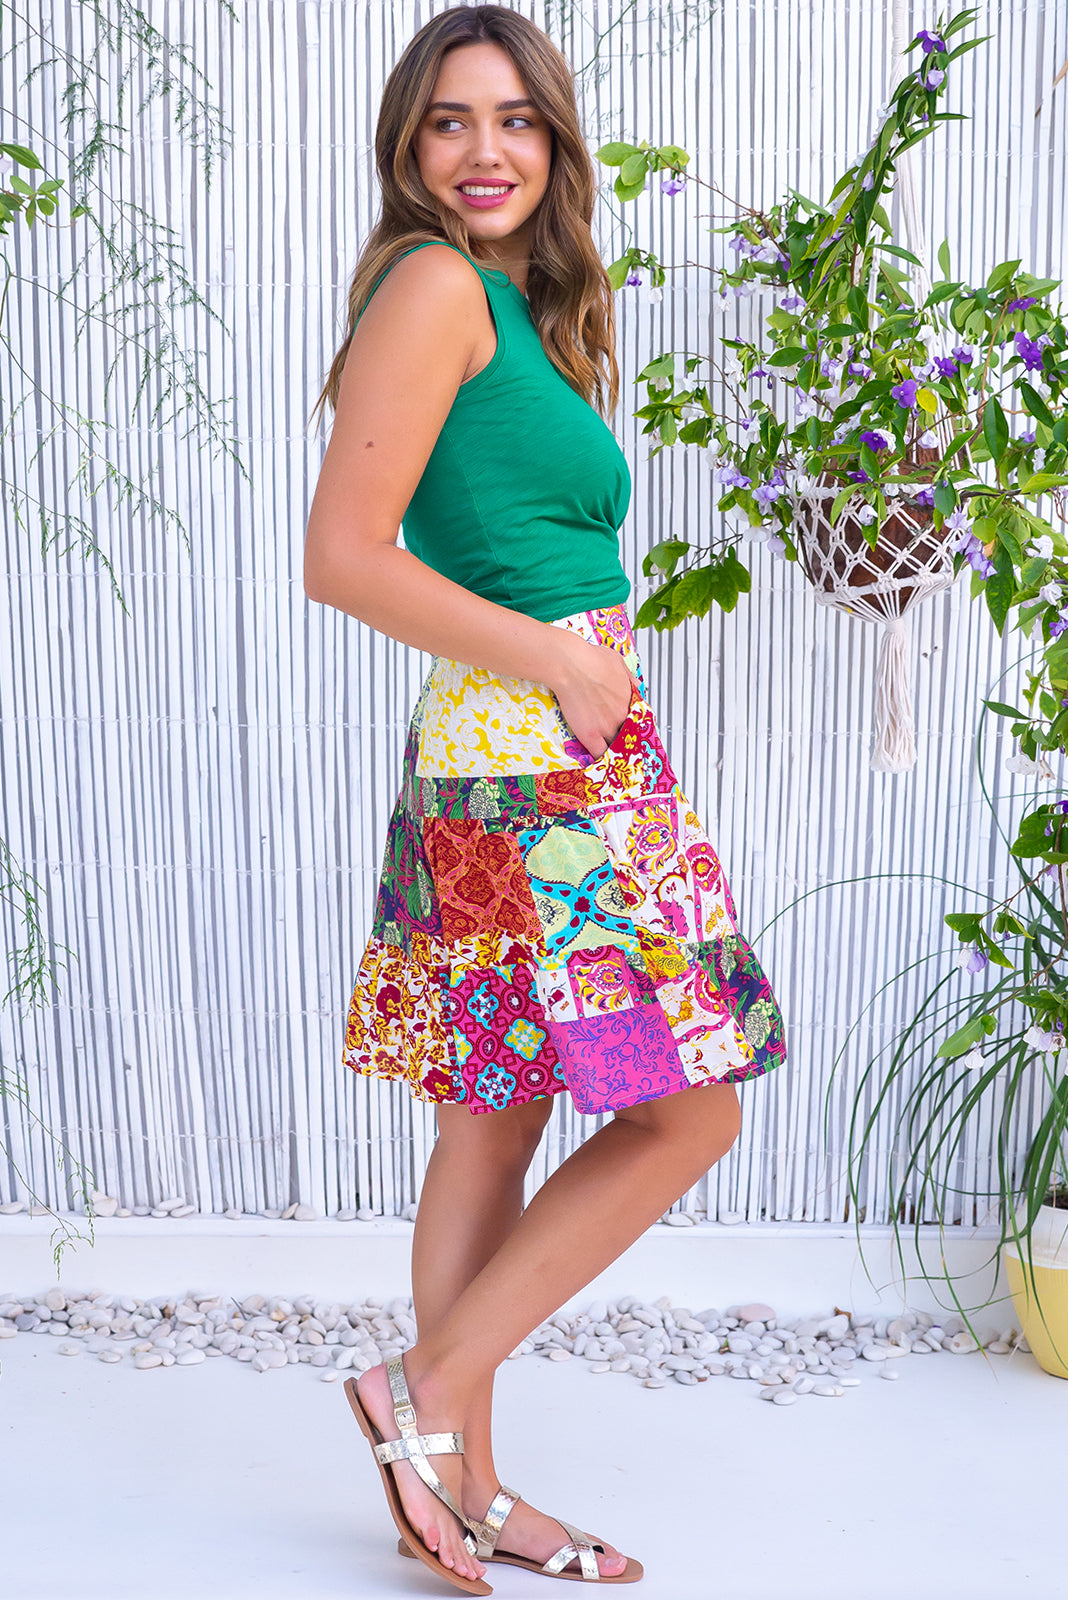 The Valencia oasis Party Mini Skirt features elasticated back waistband, comfortable pull-on style, tiered for flirty fullness, side pockets and 100% cotton in multicoloured patchwork print.